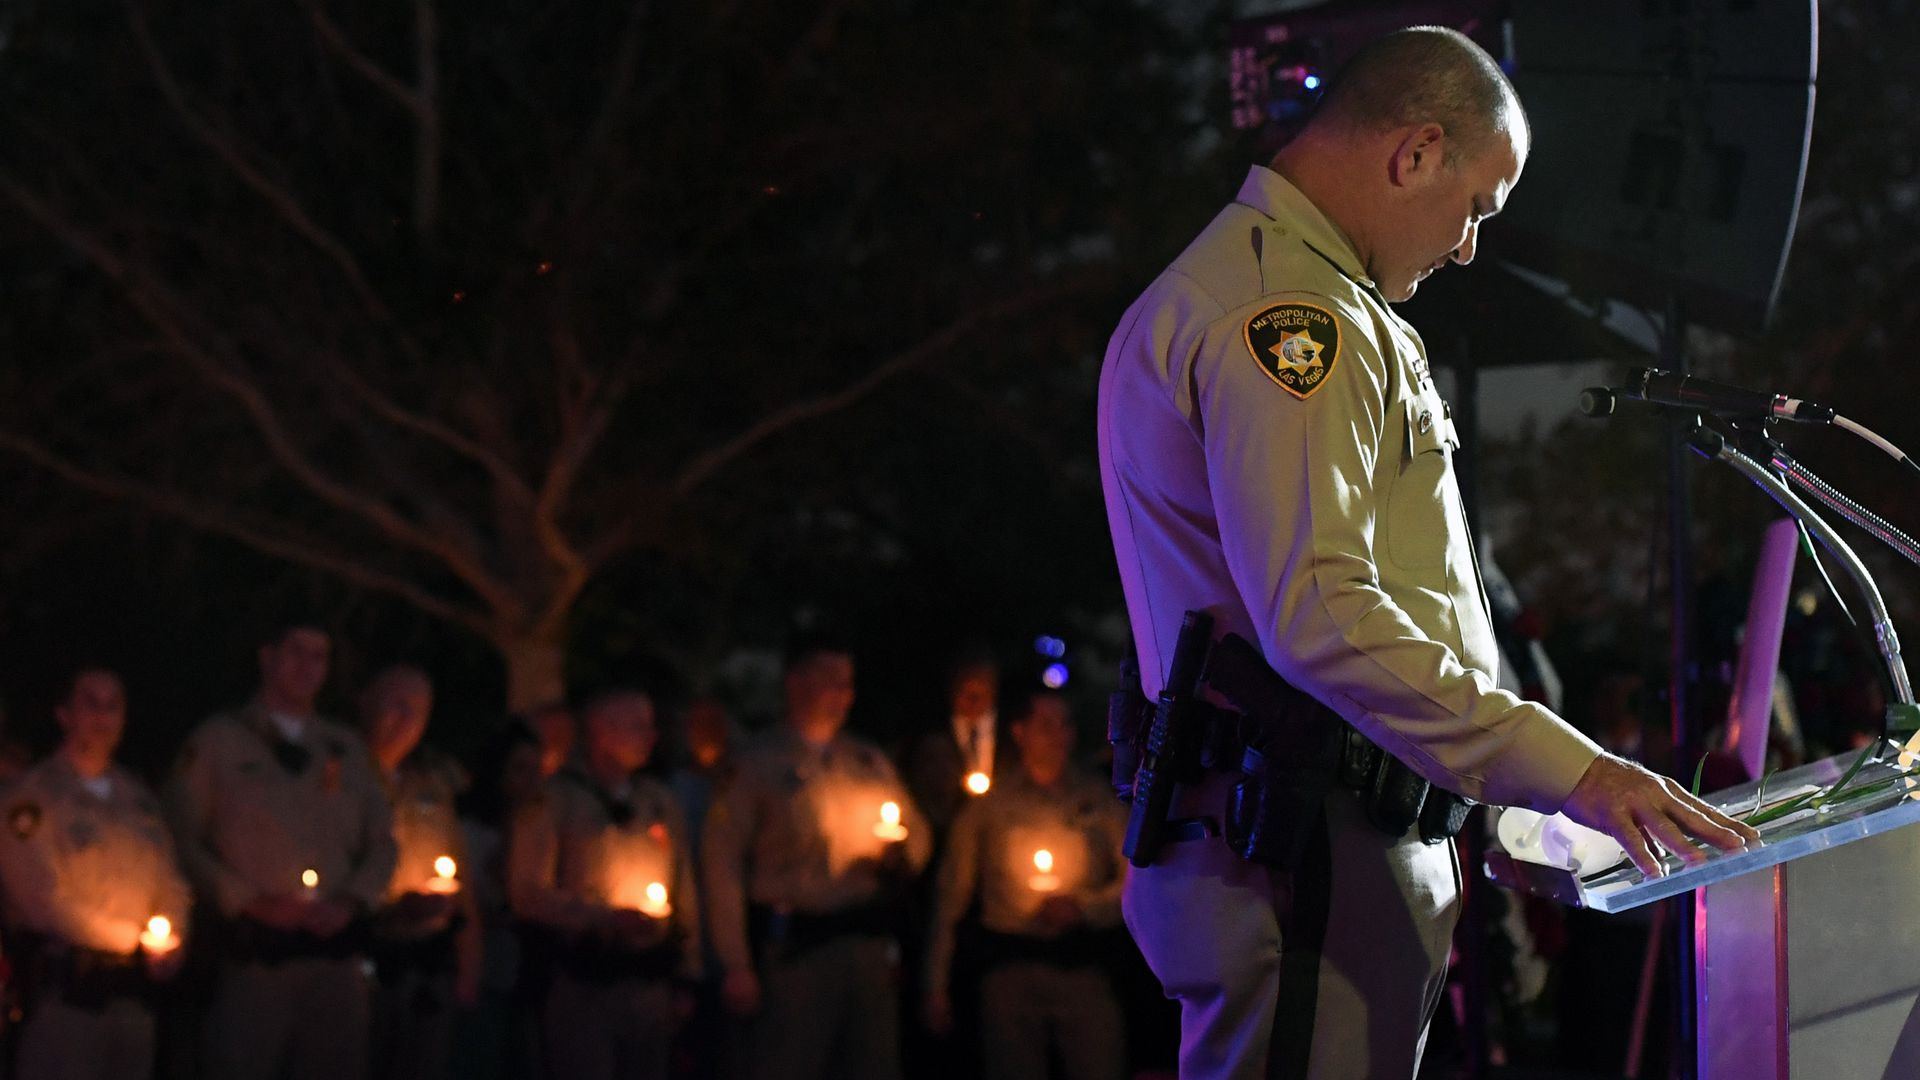 A Las Vegas police officer speaks at a vigil for the victims of the Las Vegas shooting.